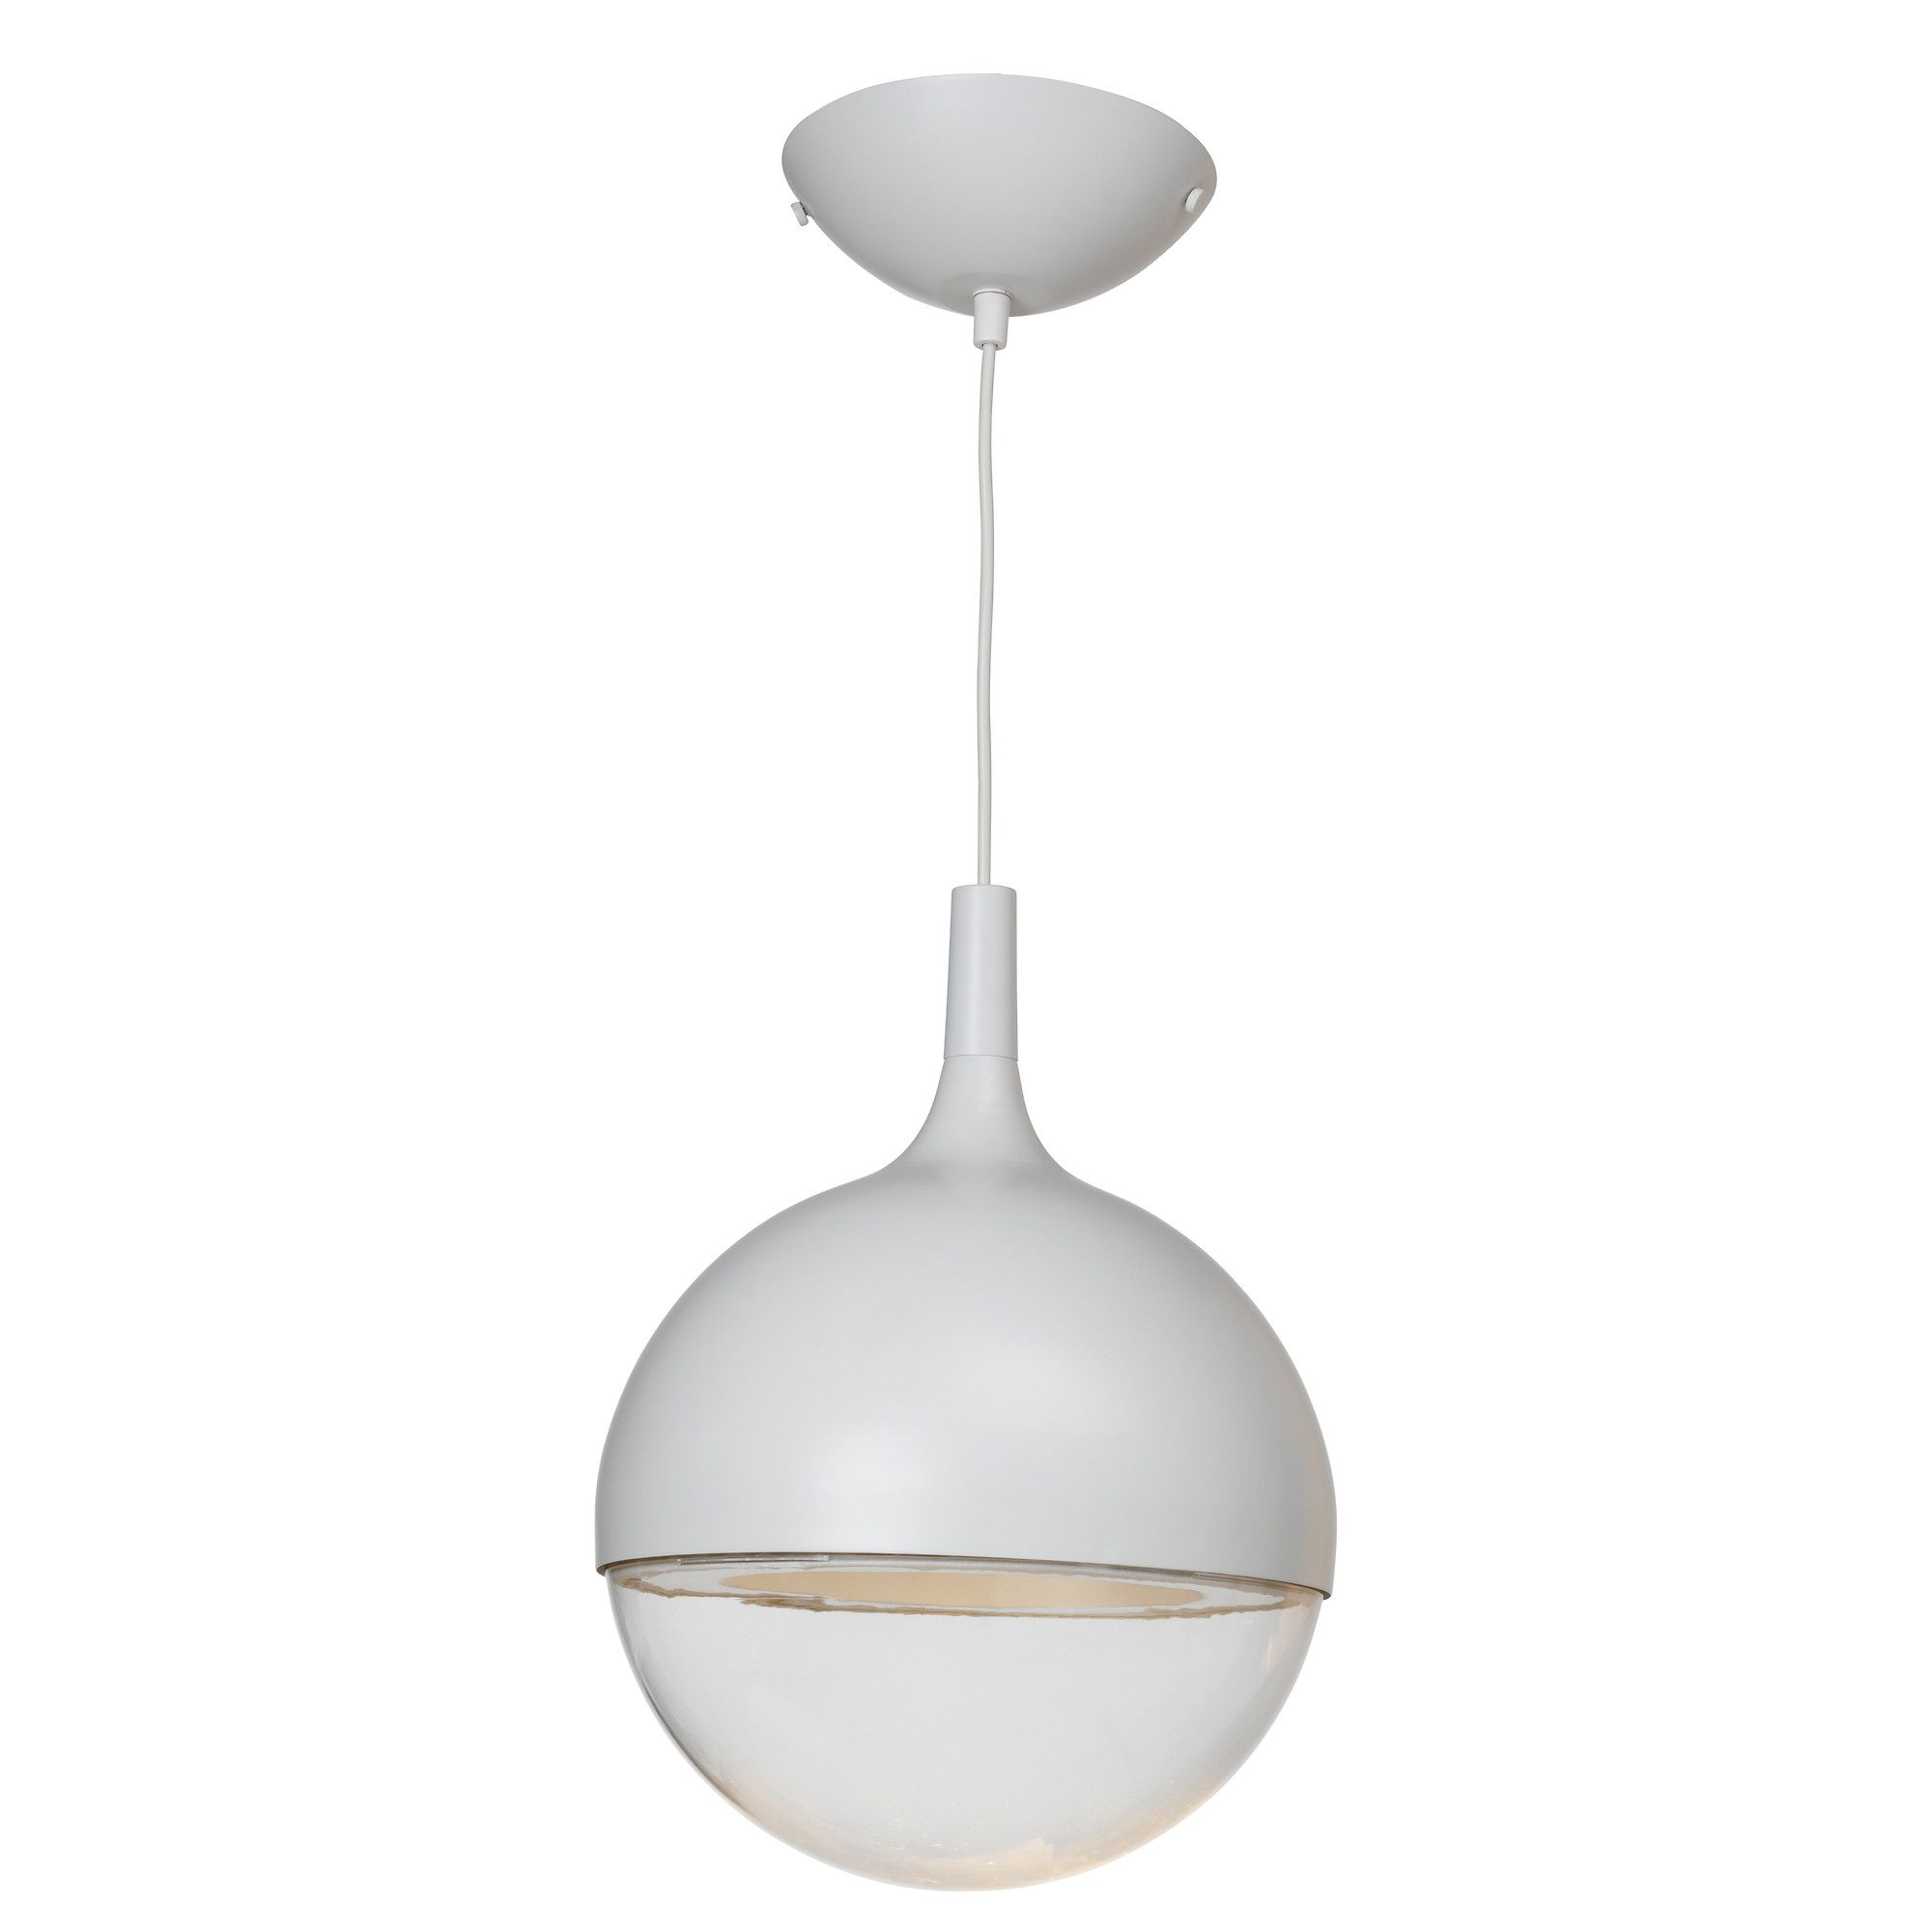 Minut Pendant Lamp: VÄSTER LED Pendant Lamp - IKEA Kitchen